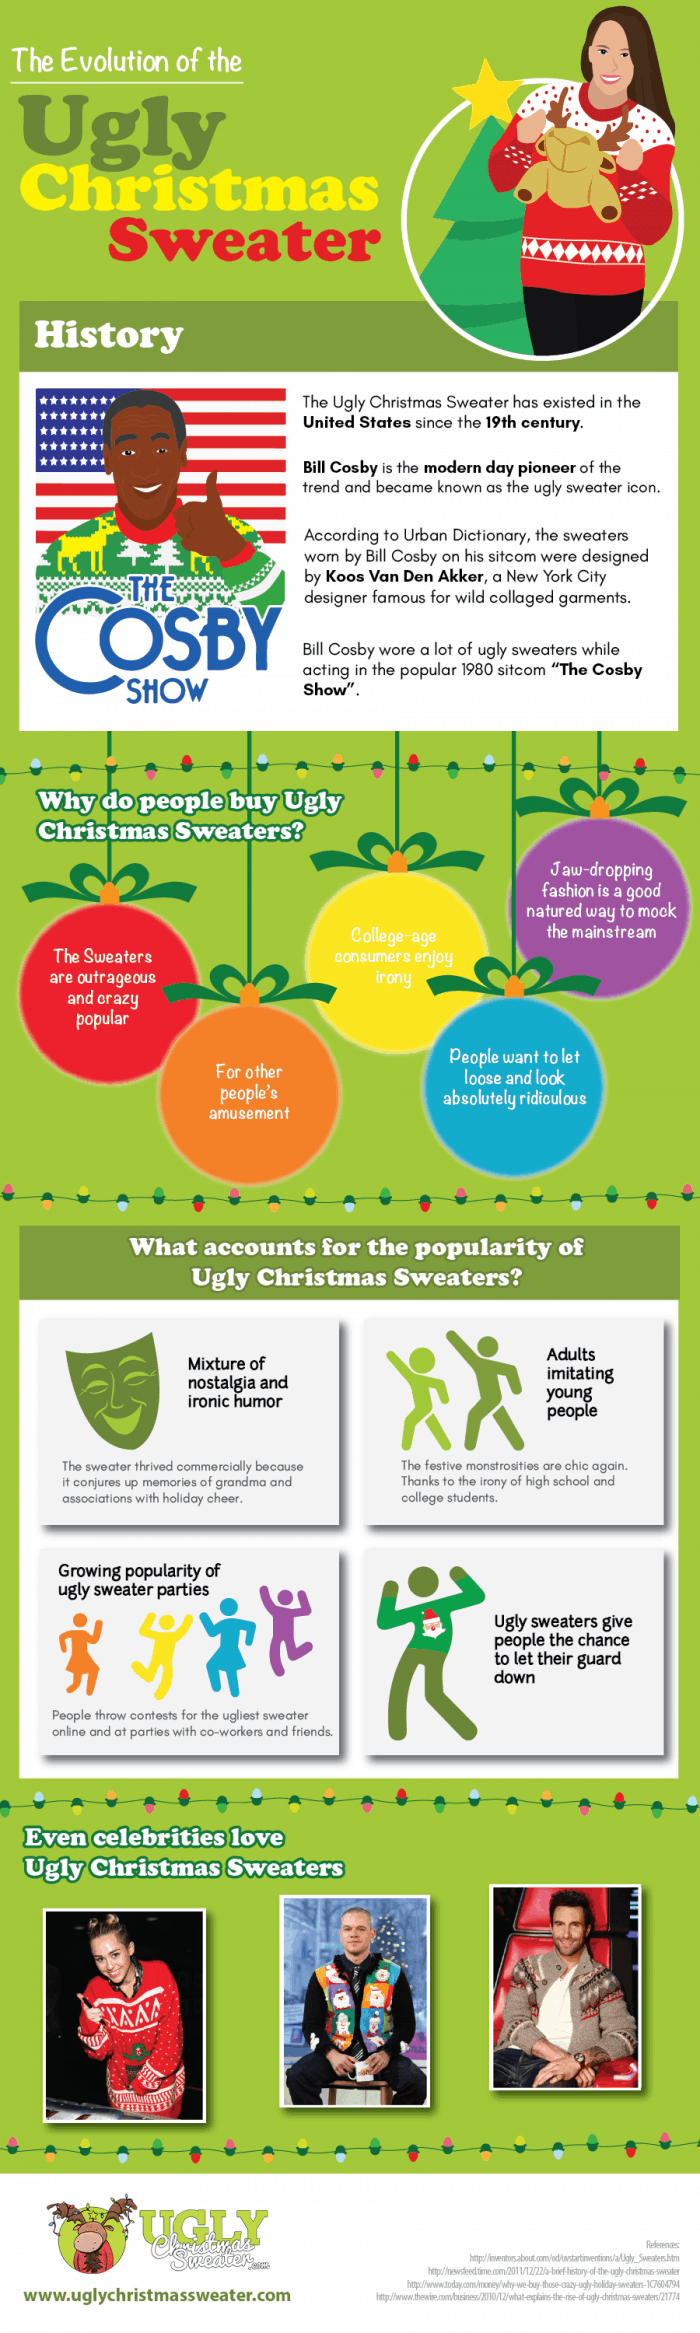 Evolution of the Ugly Christmas Sweater infographic